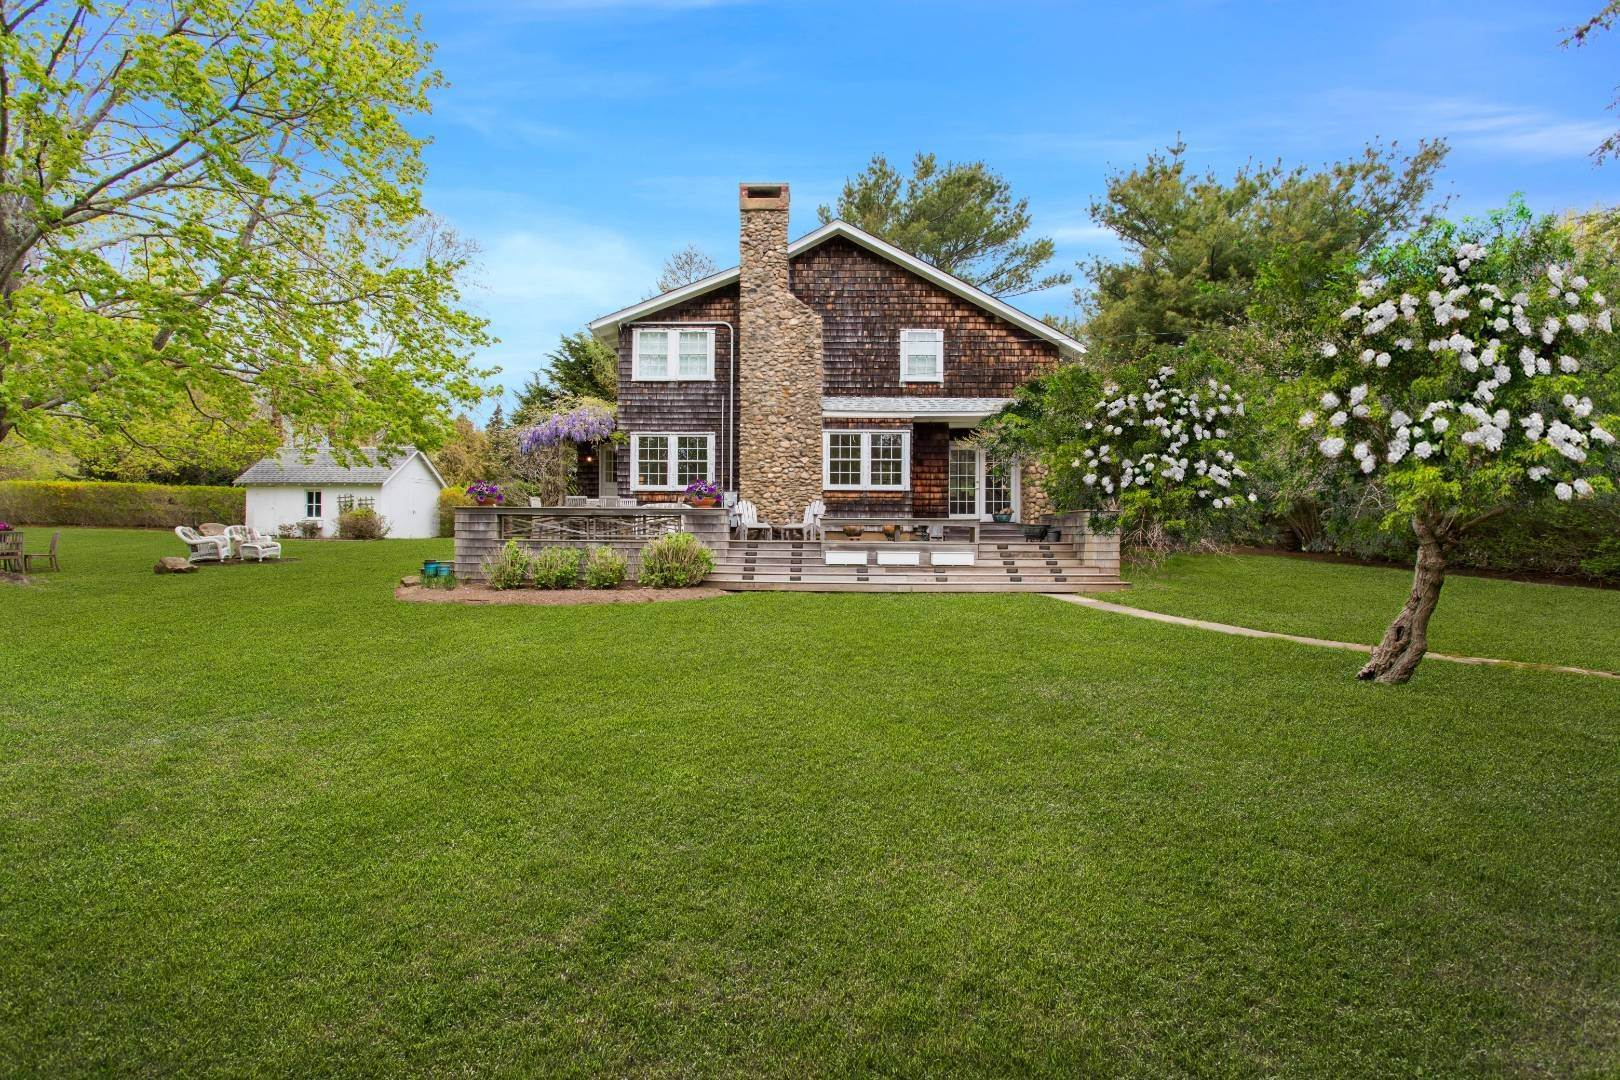 Single Family Home for Sale at Serenity In Southold 3075 Lighthouse Road, Southold, NY 11971